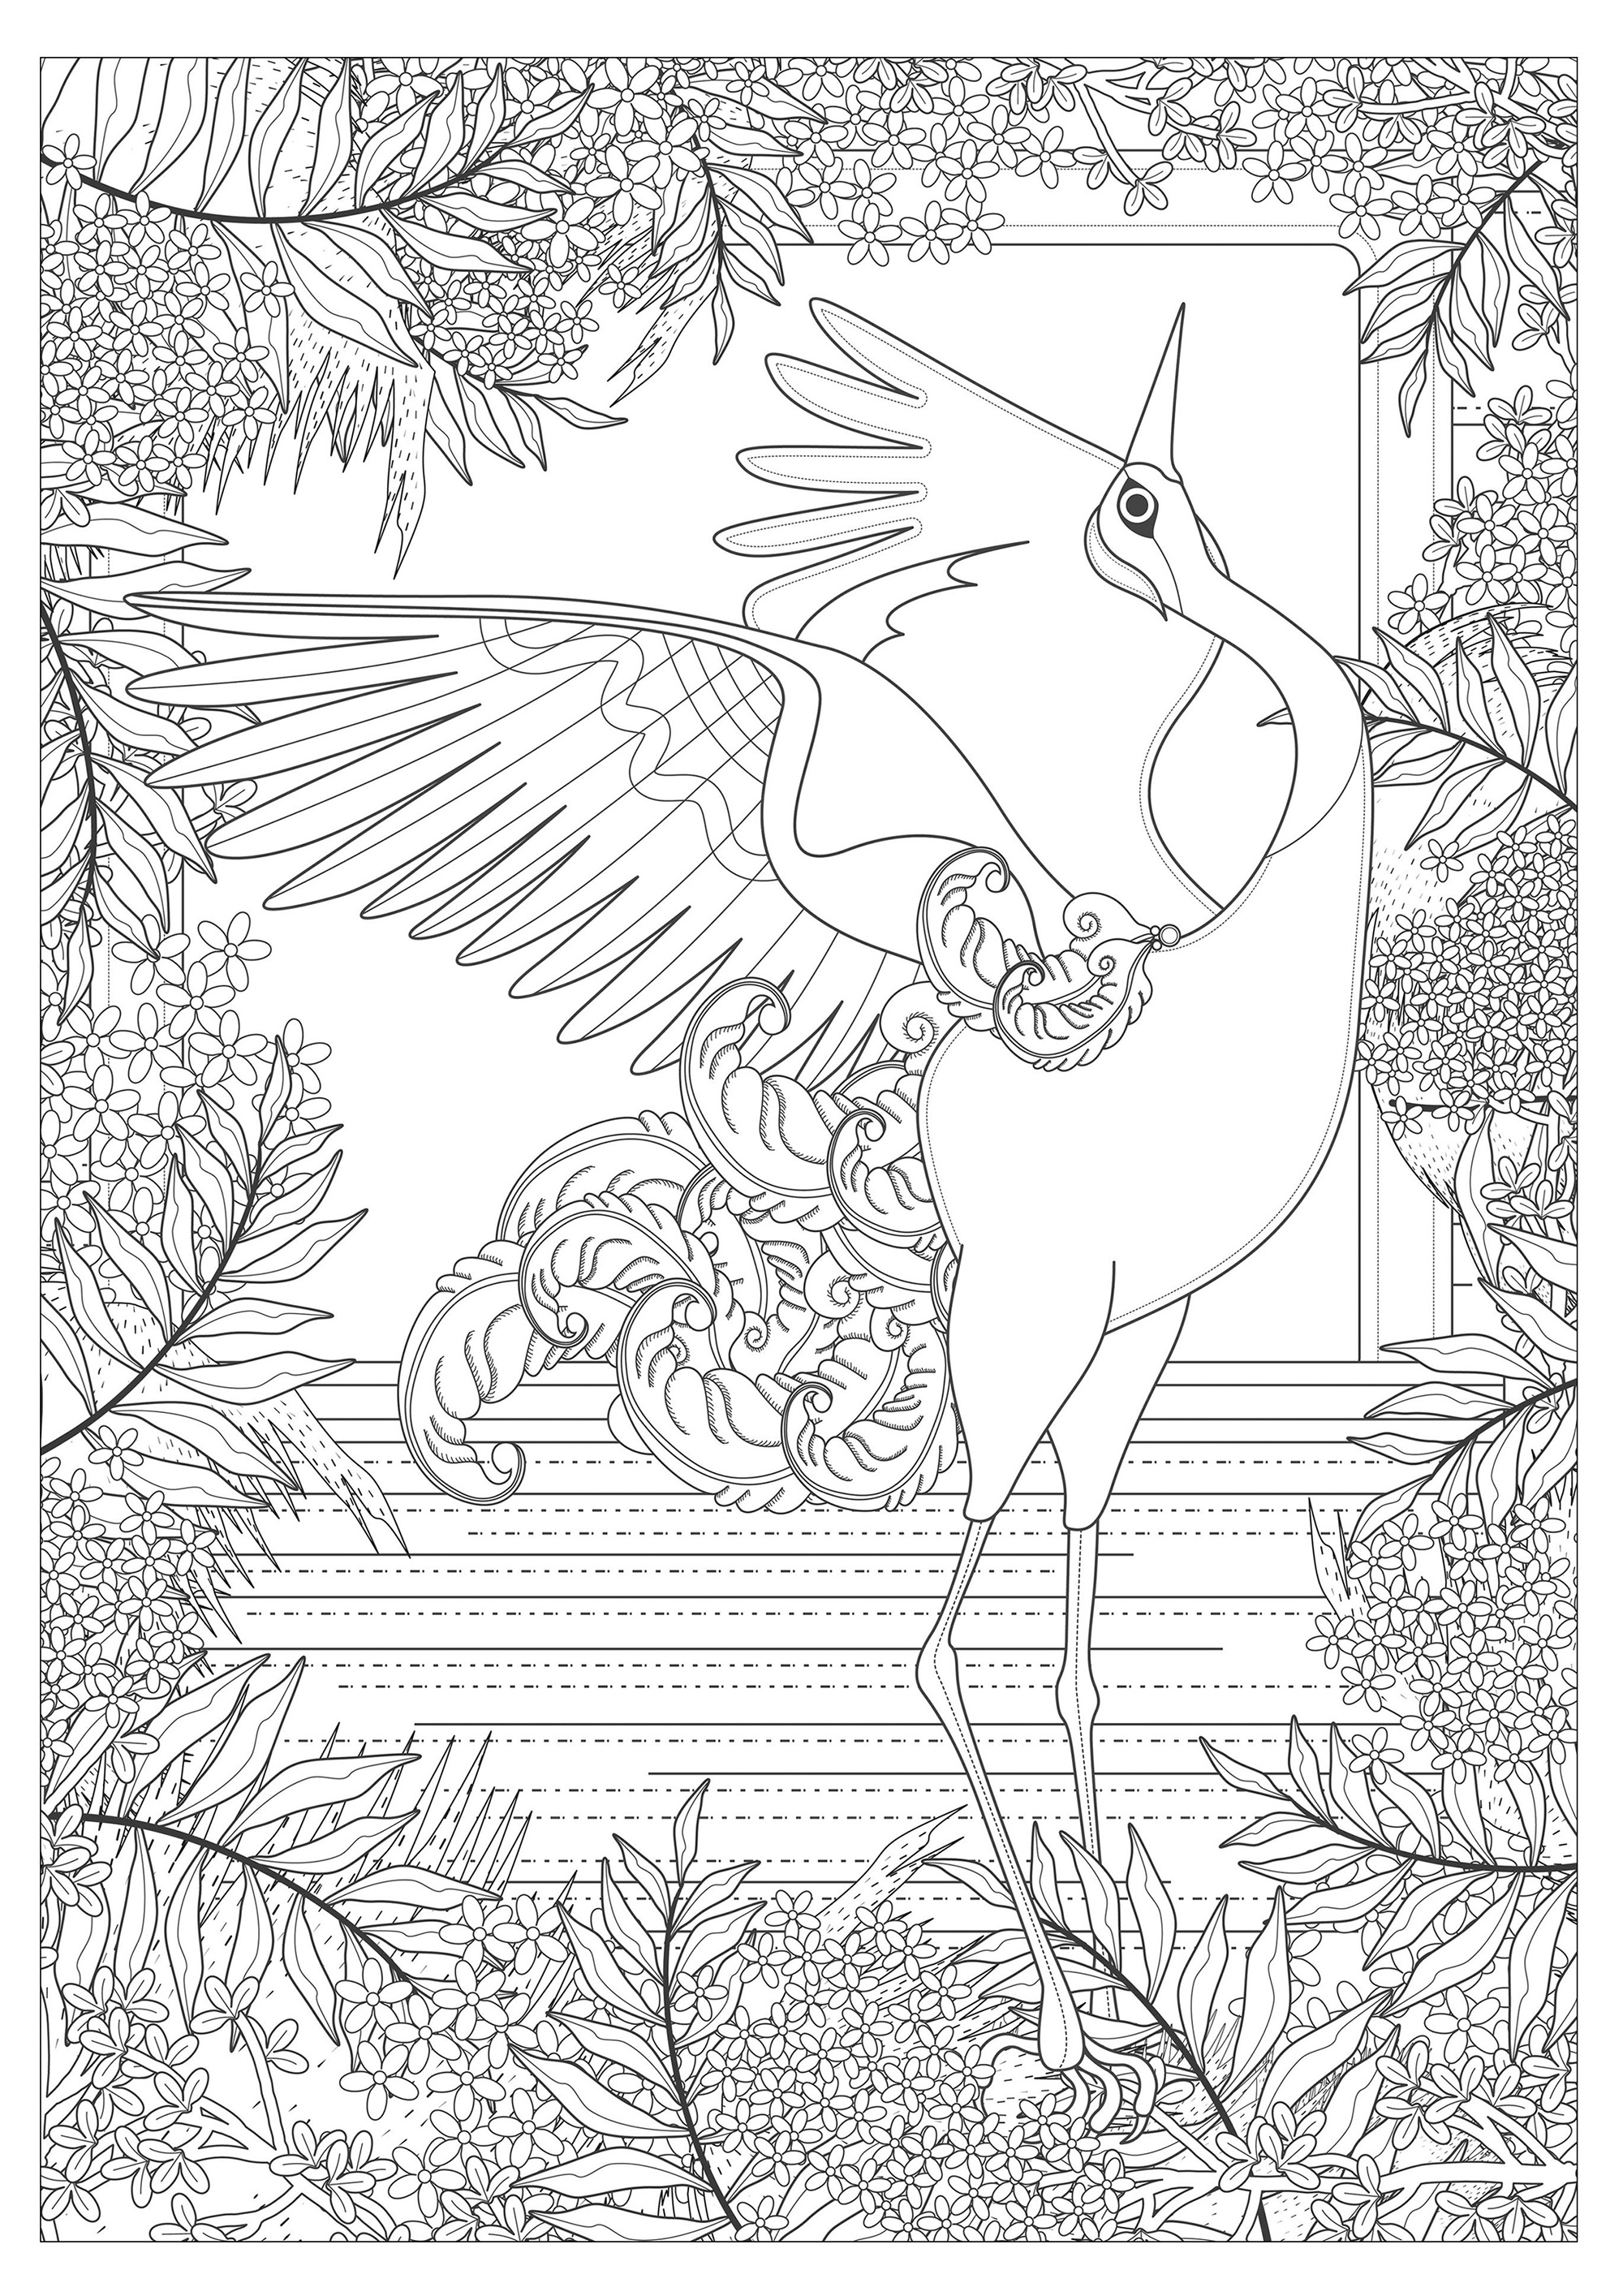 majestic crane by kching animals coloring pages for adults